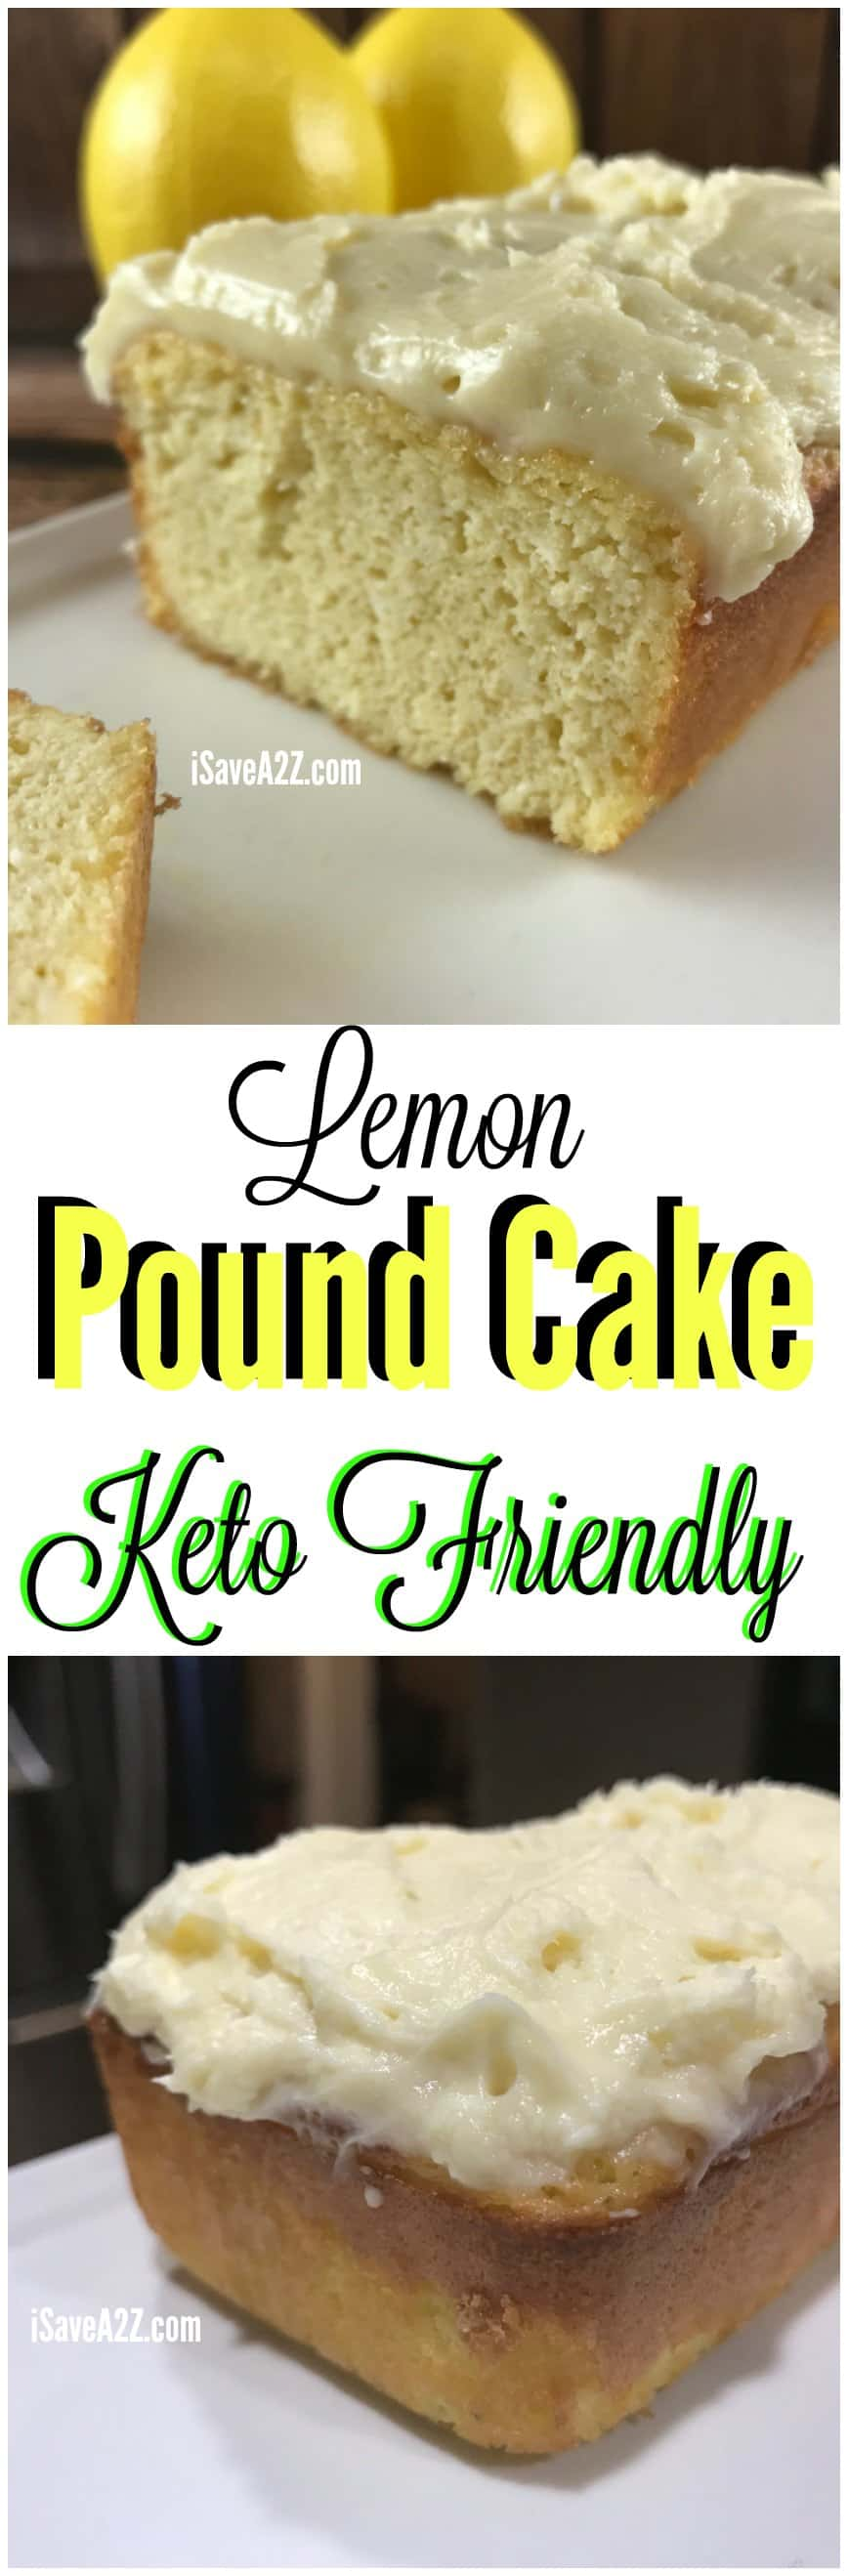 Low Carb Lemon Cake With Almond Flour